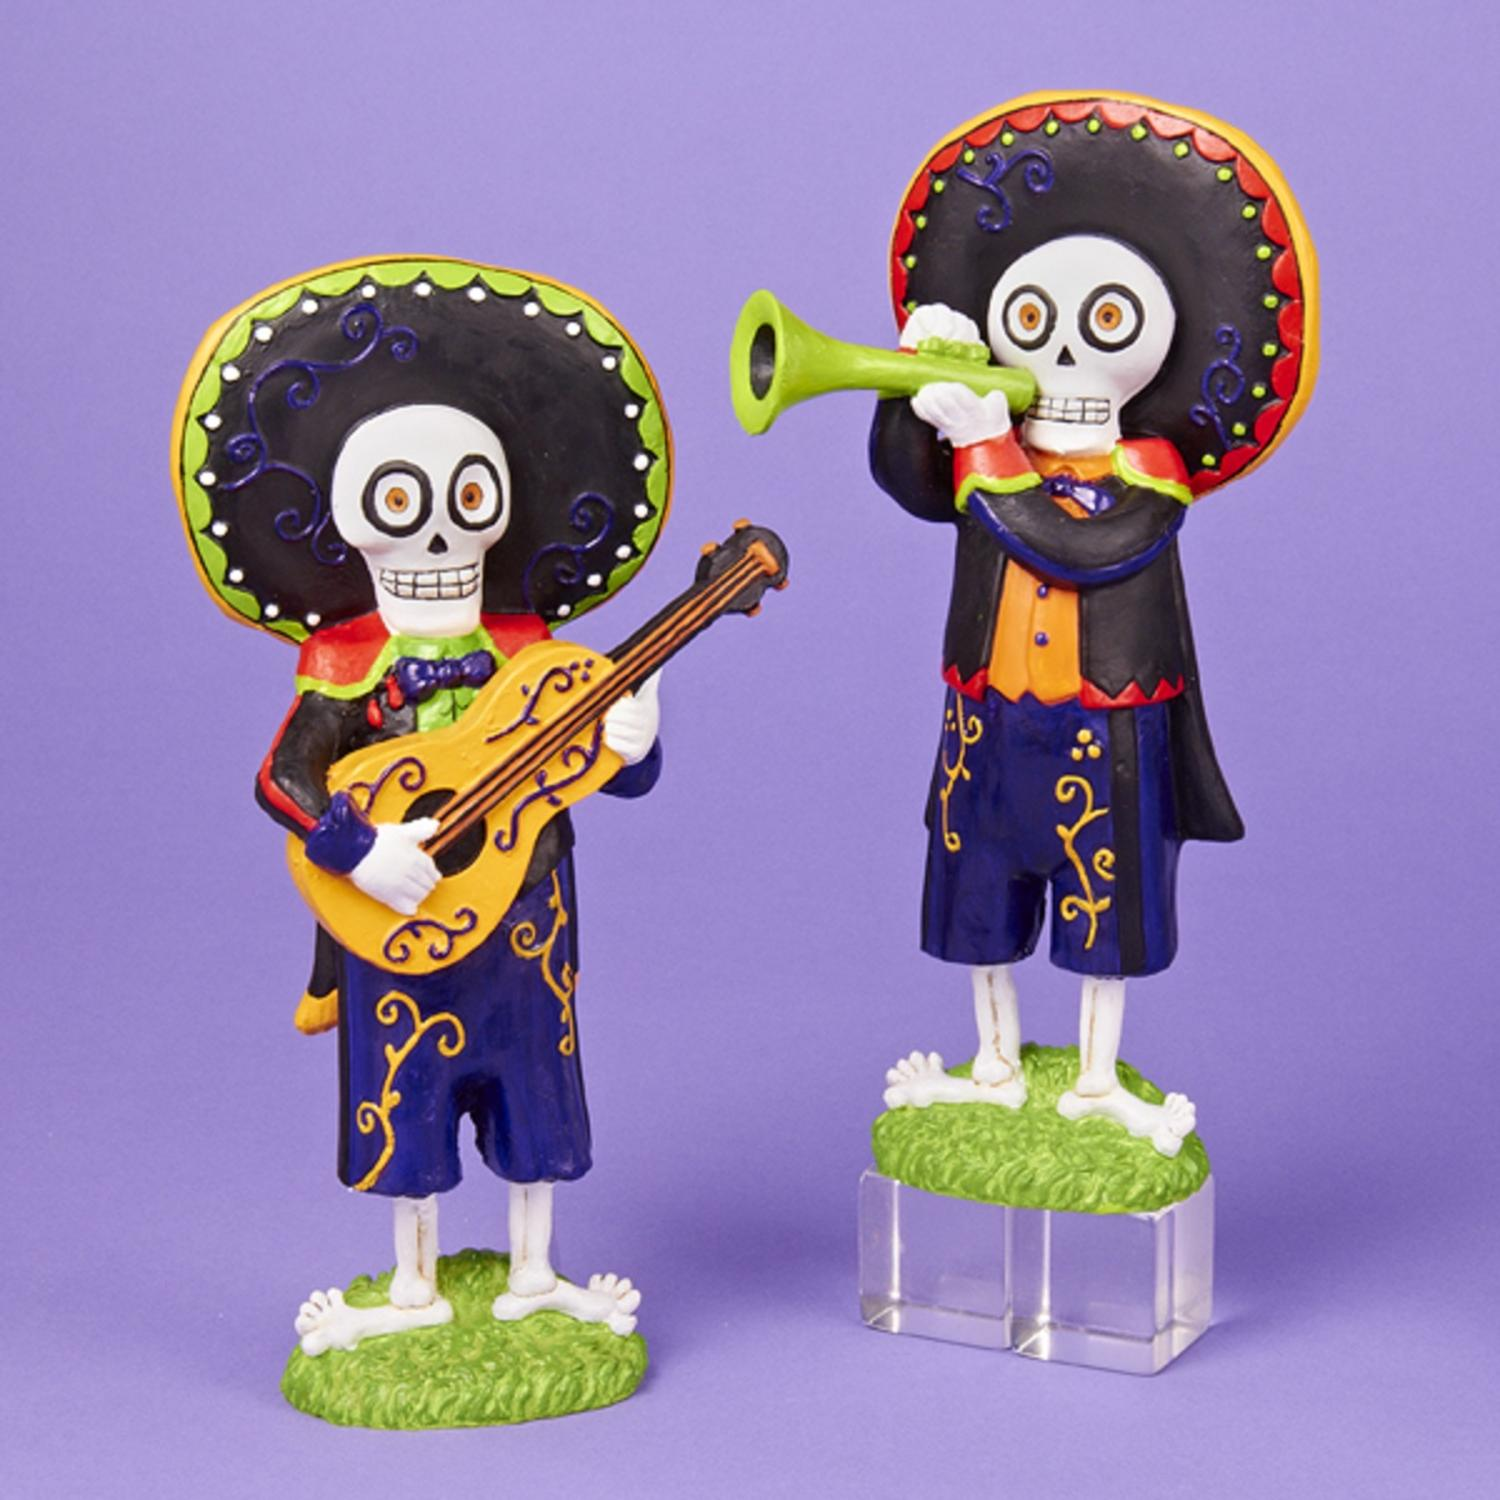 Set of 2 Day of the Dead Mariachi Band Halloween Table Piece Decorations 9.75""